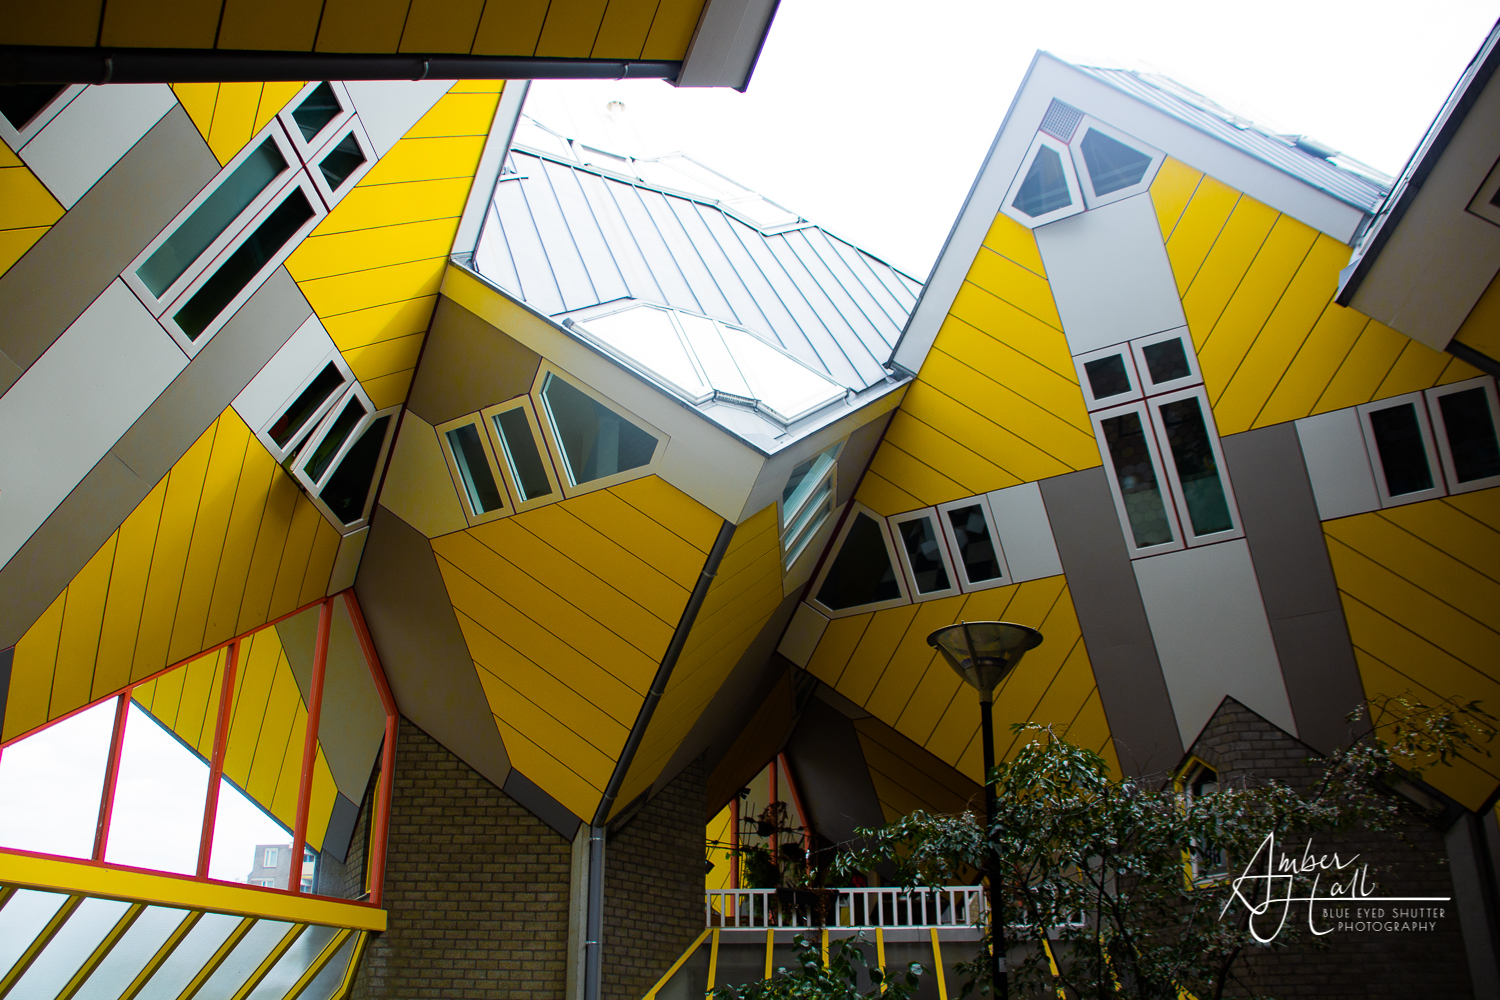 Cube Houses, Rotterdam_2018 (1 of 2)